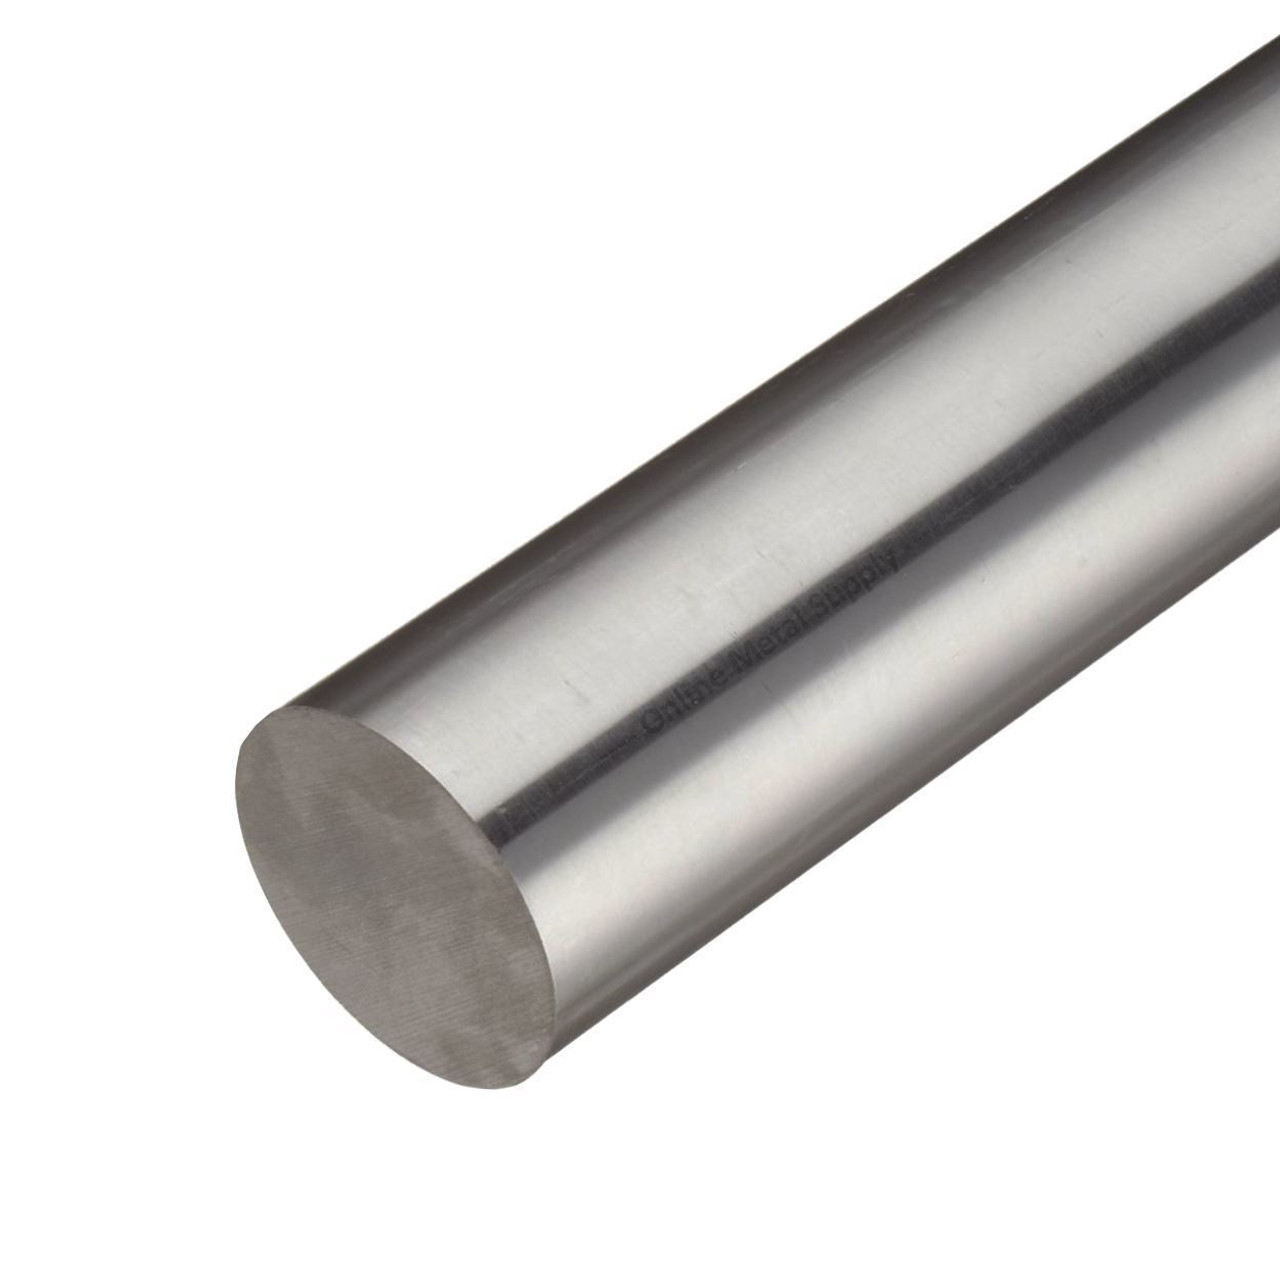 0.875 (7/8 inch) x 36 inches, 440C CF Stainless Steel Round Rod